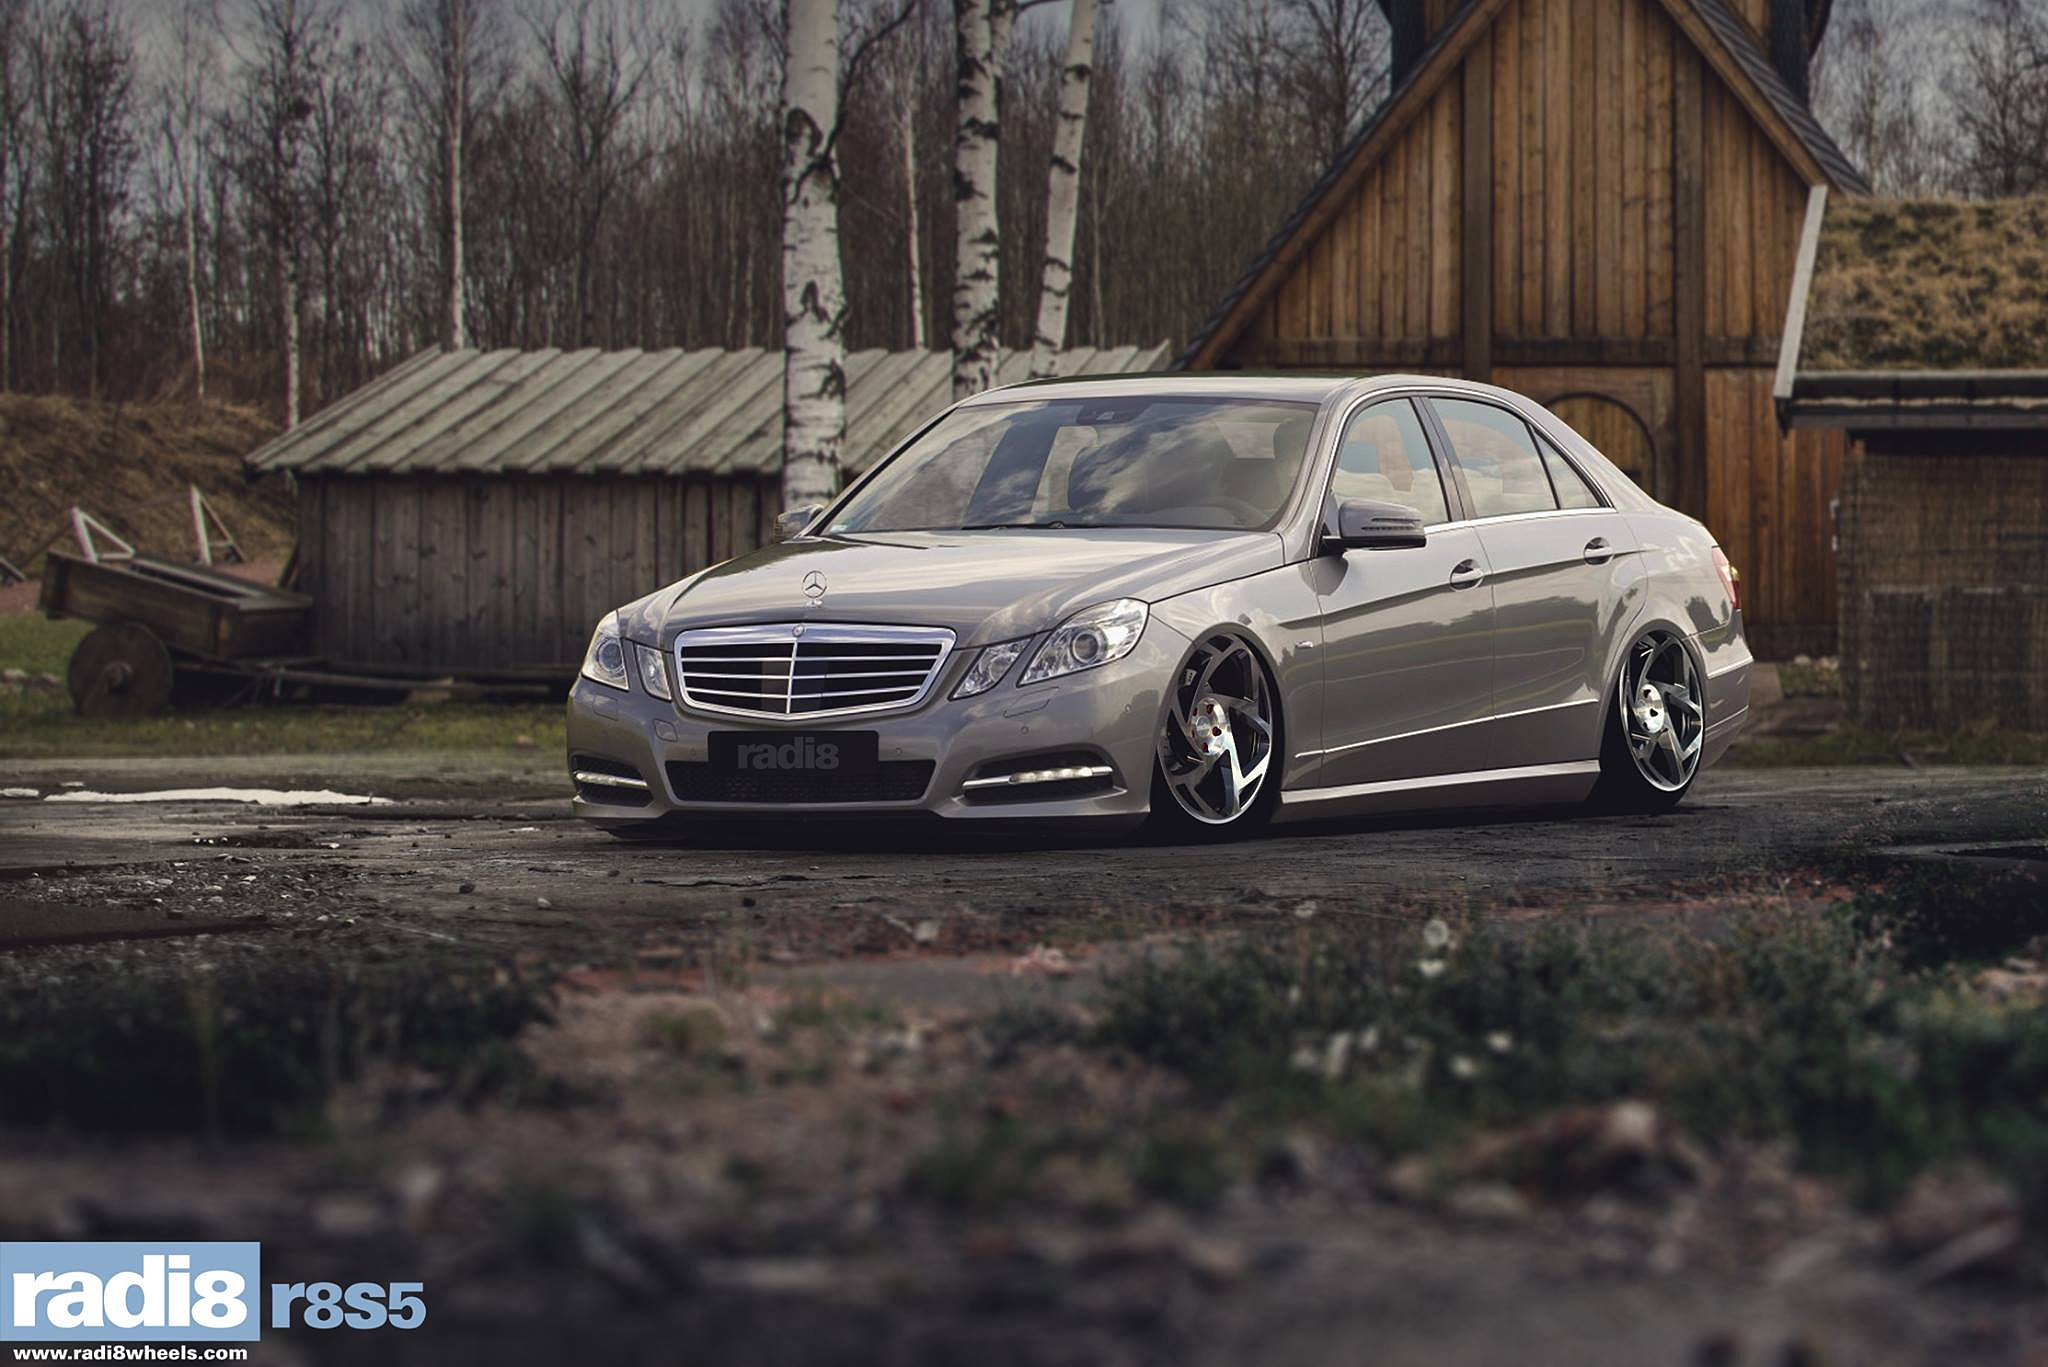 Radi8 wheels usa usa official website radi8 r8s5 for Mercedes benz official site usa